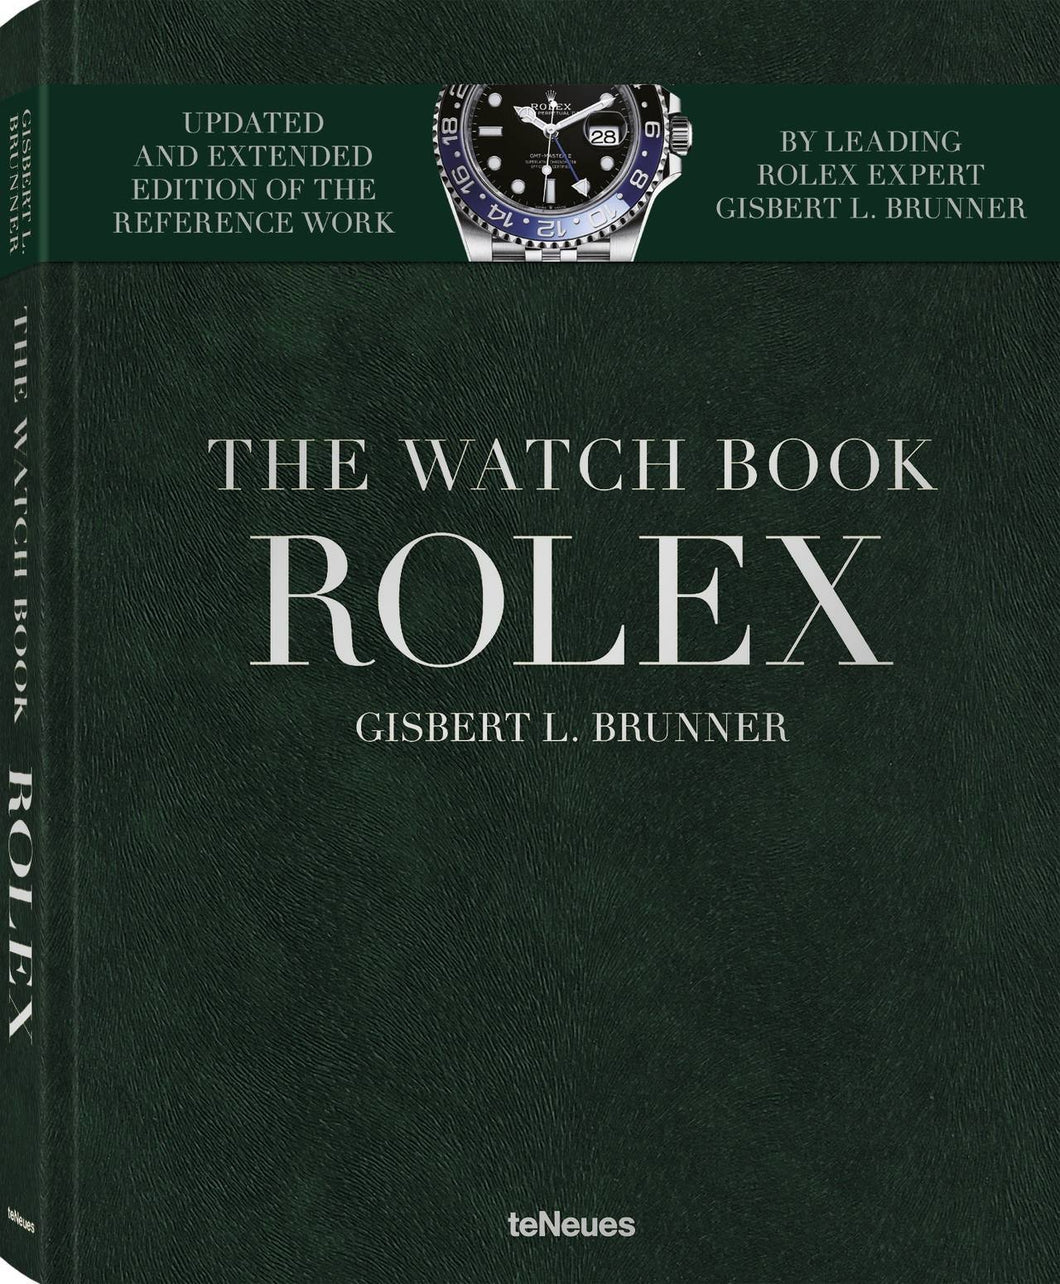 Libro The Watch book Rolex Extended edition - Vzla